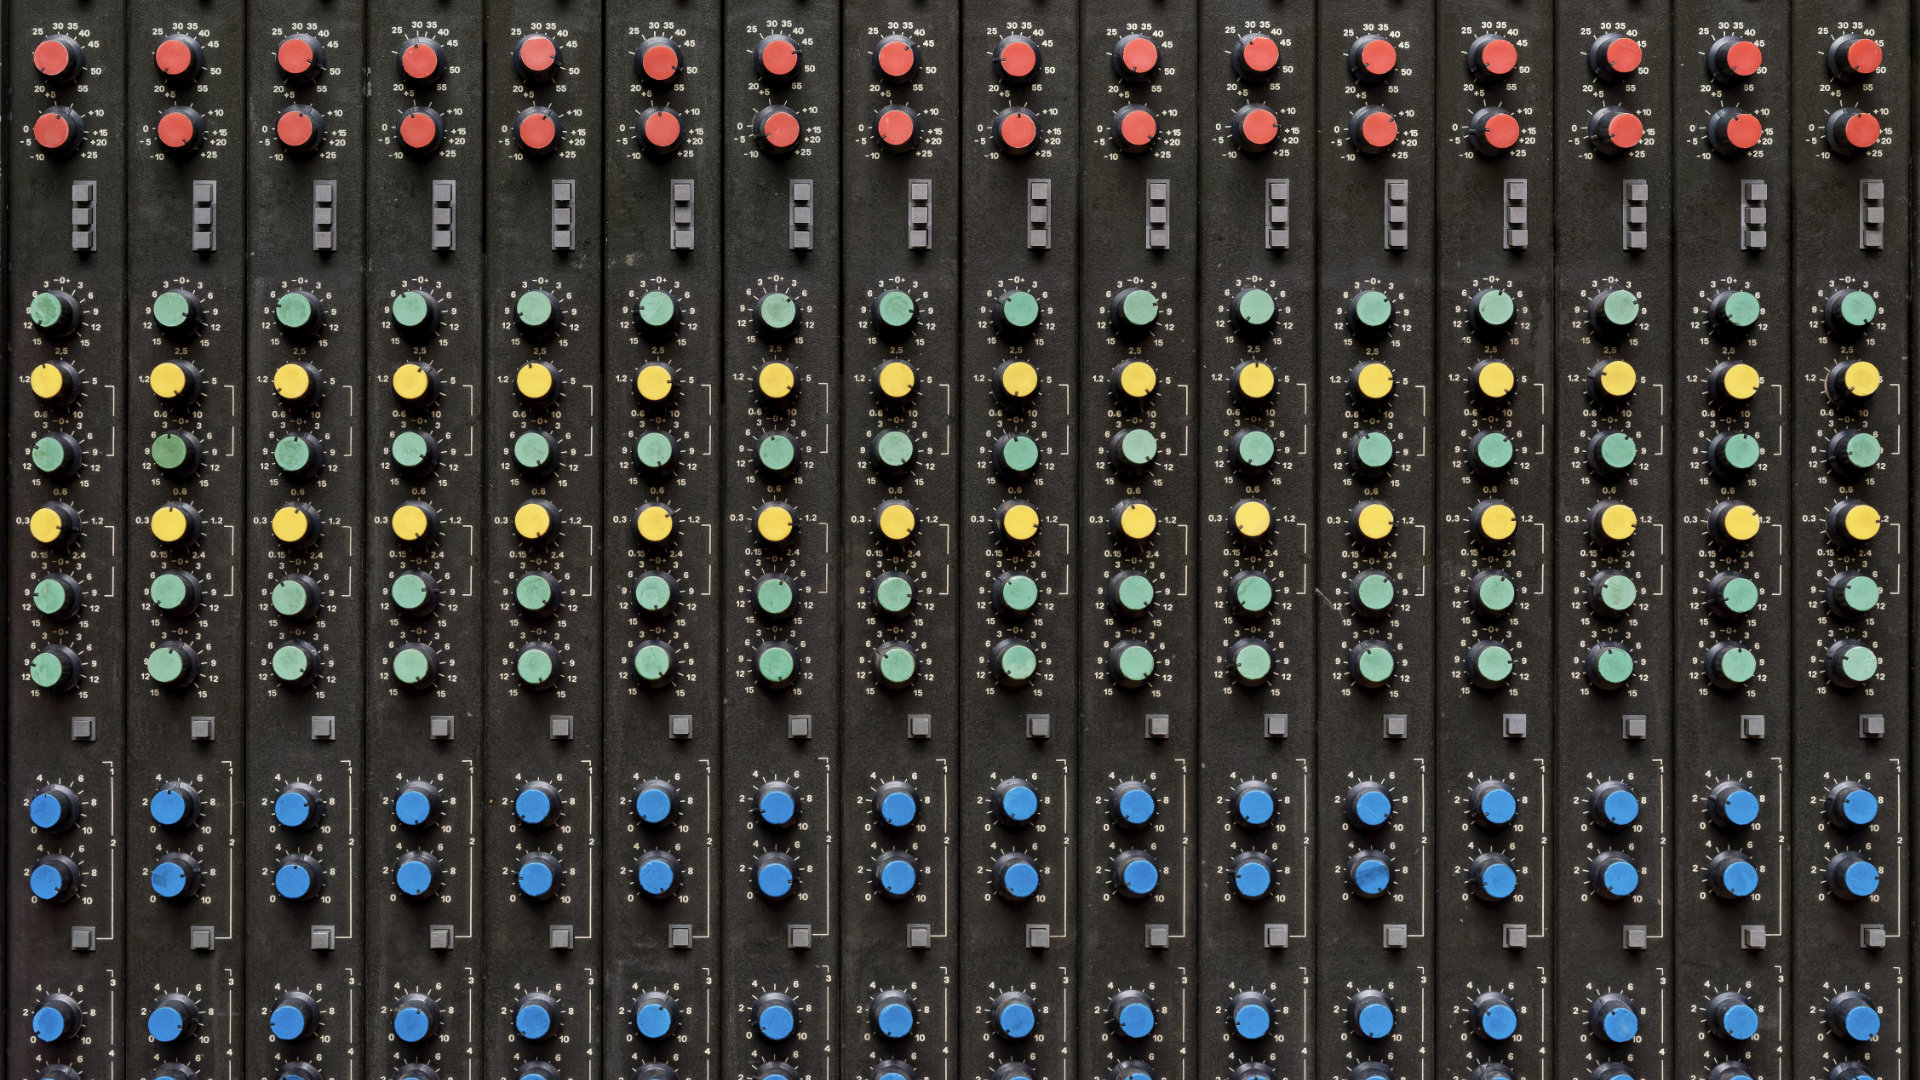 4 of the best plugins for mixing and mastering - decibel peak